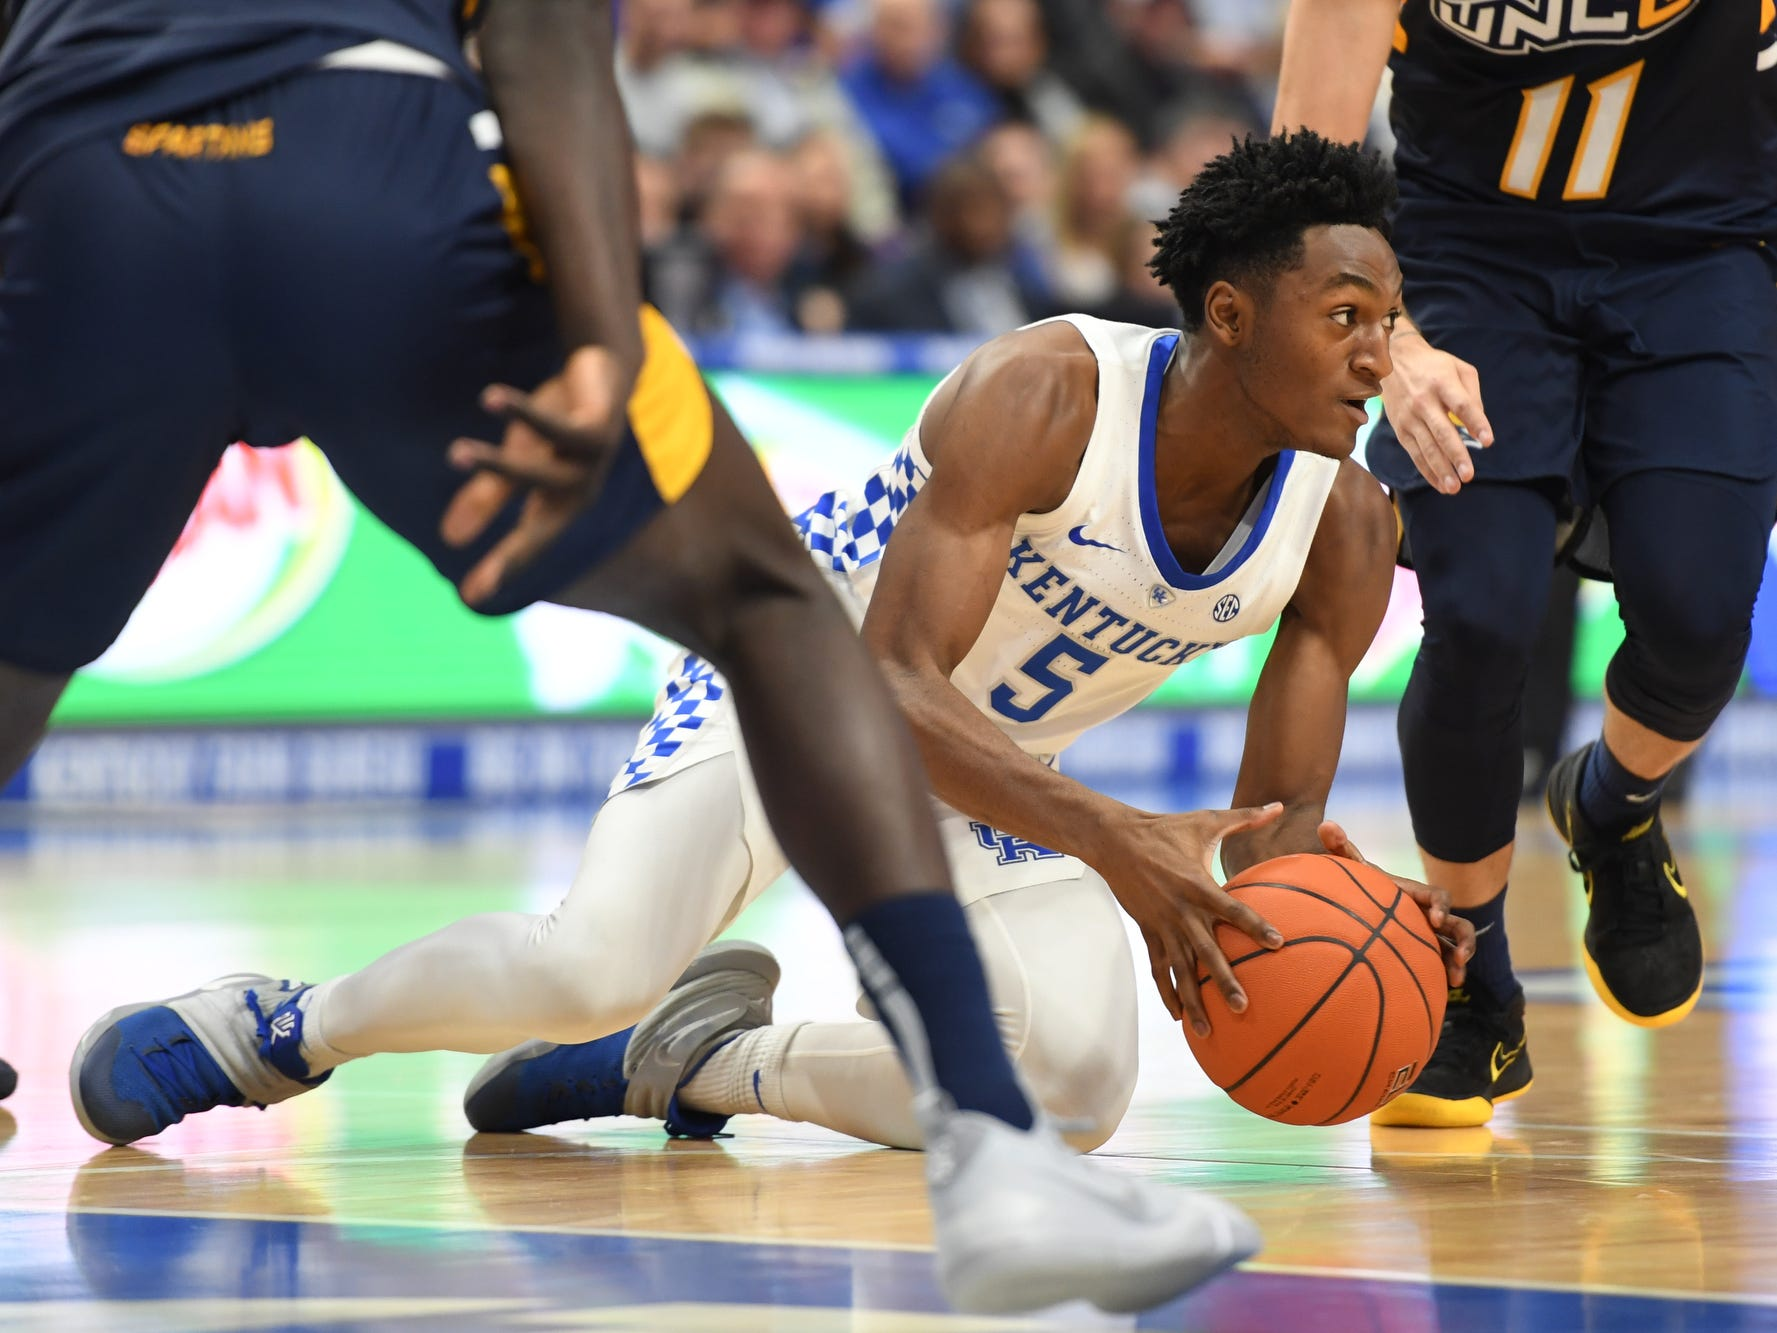 UK G Immanuel Quickley grabs the ball during the University of Kentucky men's basketball game against UNC Greensboro at Rupp Arena in Lexington, Kentucky on Saturday, December 1, 2018.